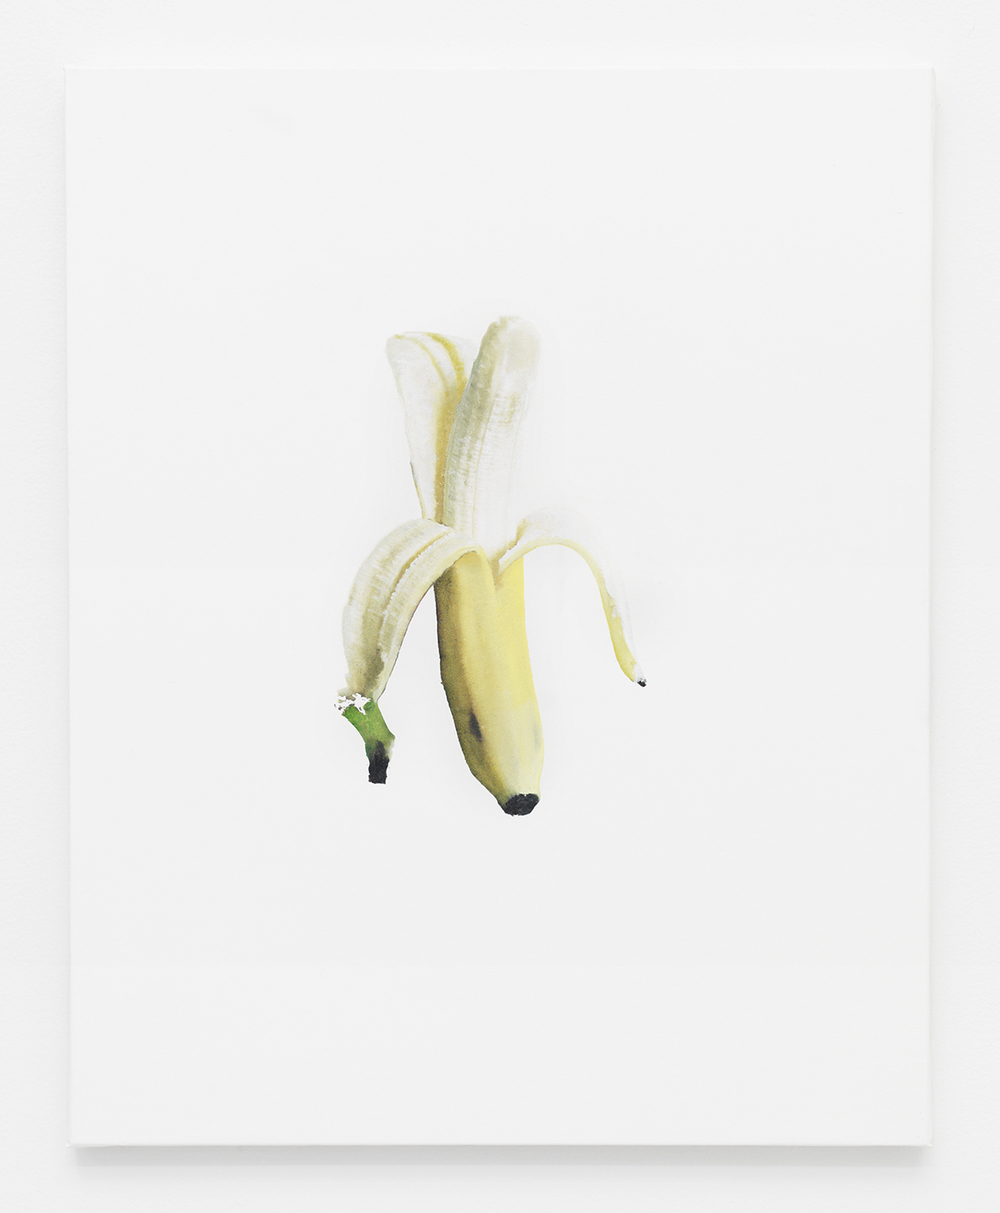 Banana Jpeg 4   2014    Oil and Epson Ultrachrome inkjet on Epson synthetic material    20 x 16 inches